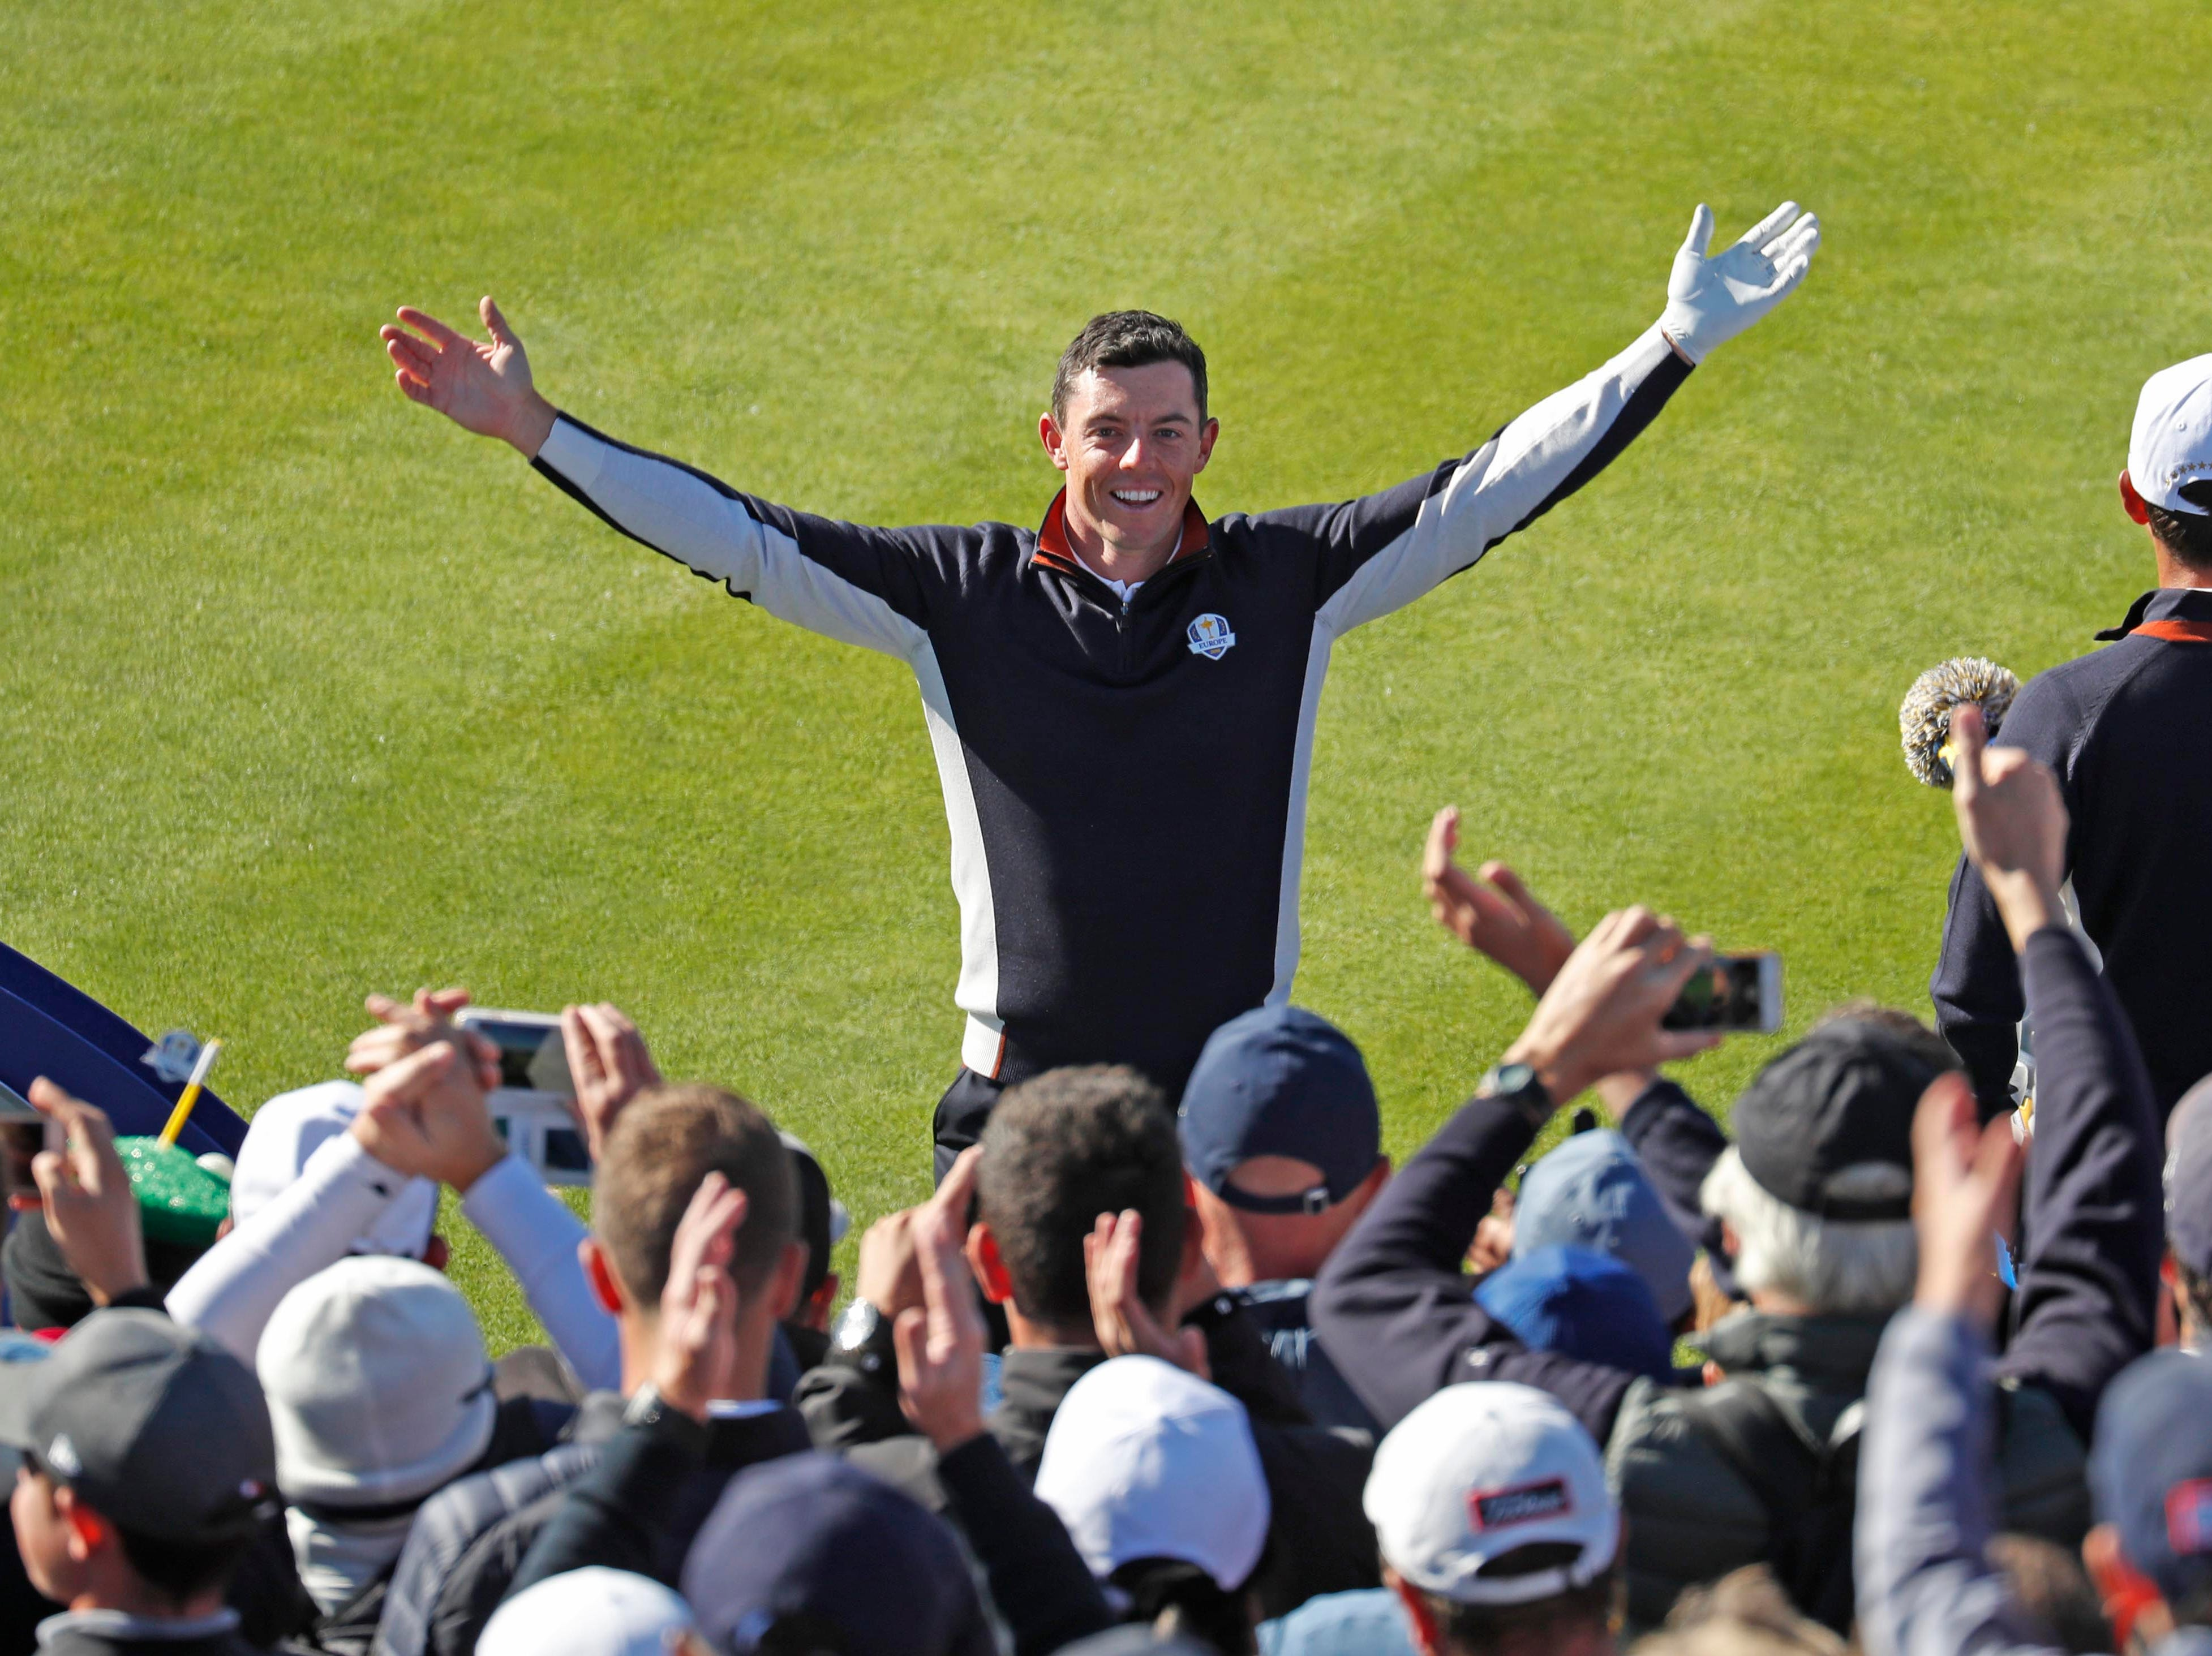 Sept. 26: Rory McIlroy leads the European fans in a cheer on the first tee during a Ryder Cup practice round.